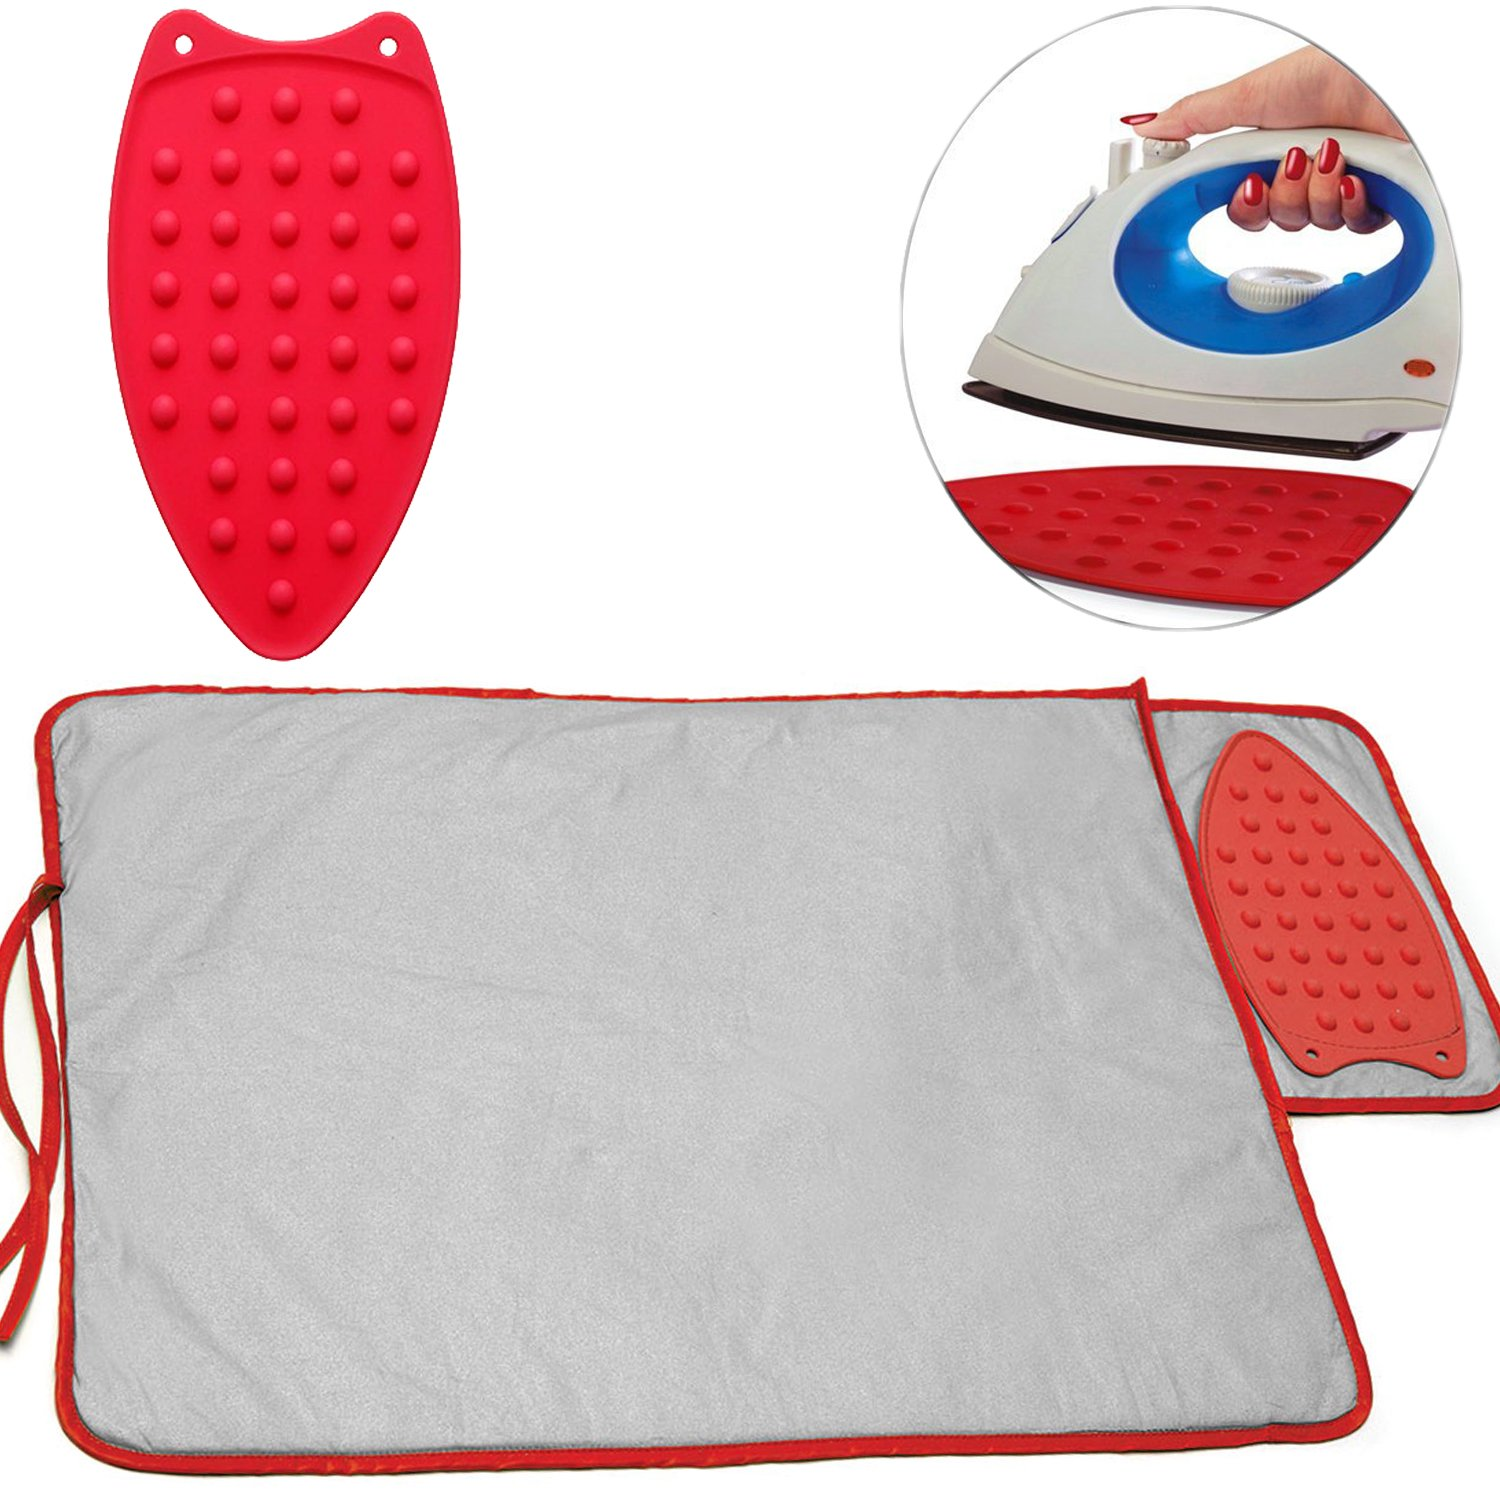 Perfect Life Ideas Ironing Pad Blanket and Iron Rest – 20 x 30 inches Hot Iron Mat Pad for Table Top or Countertops with Heat Resistant Pad as Rest Plate Perfect Alternative to Ironing Board by